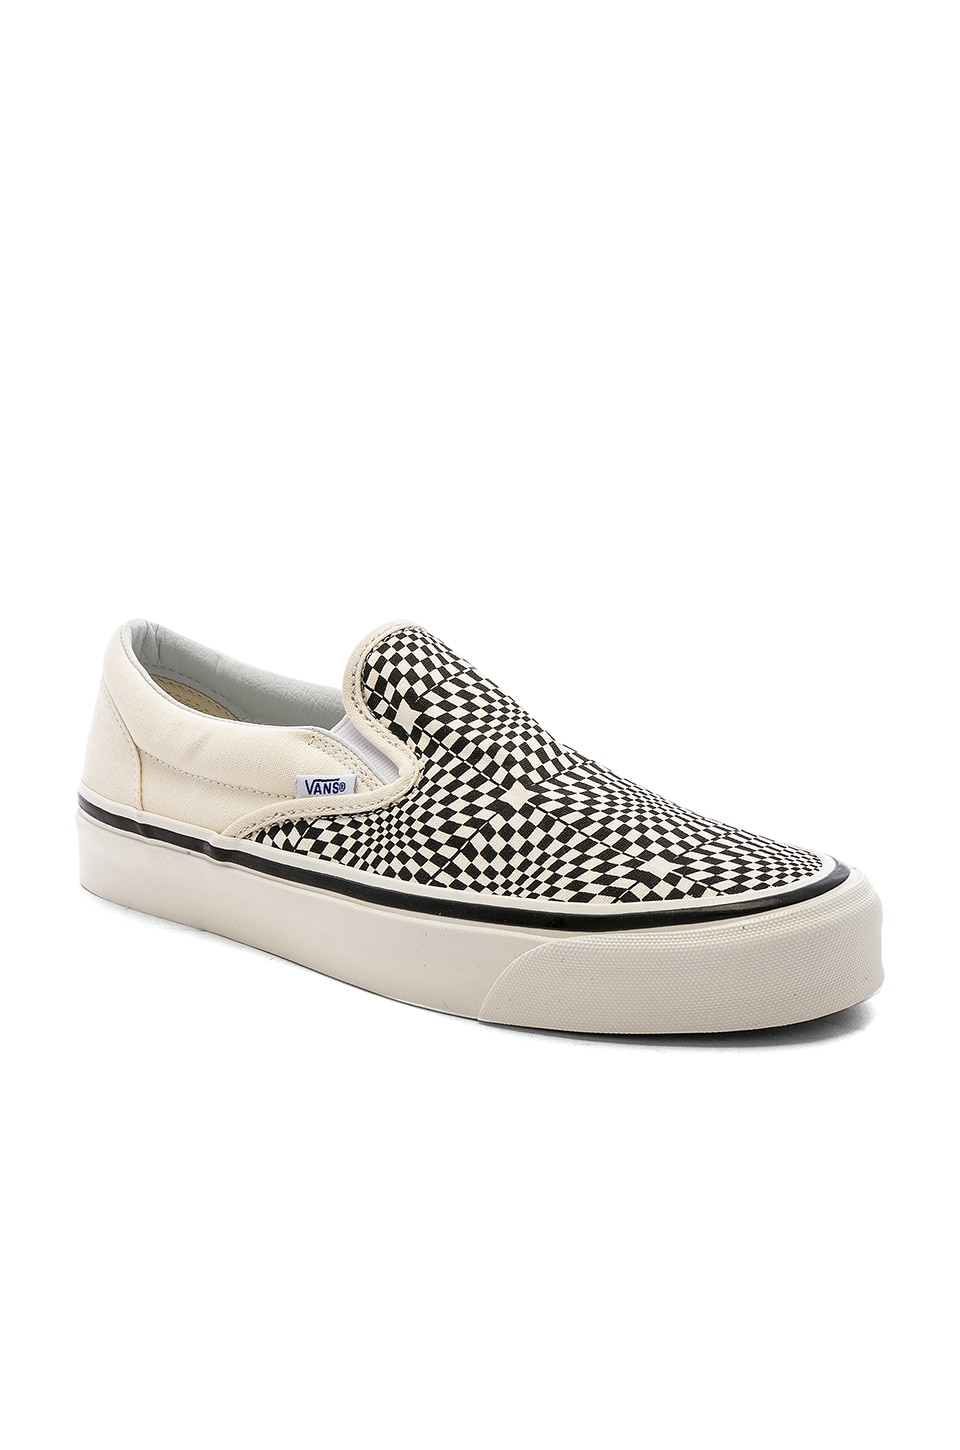 Vans Classic Slip-On 98 in OG Black & White & Warp Check